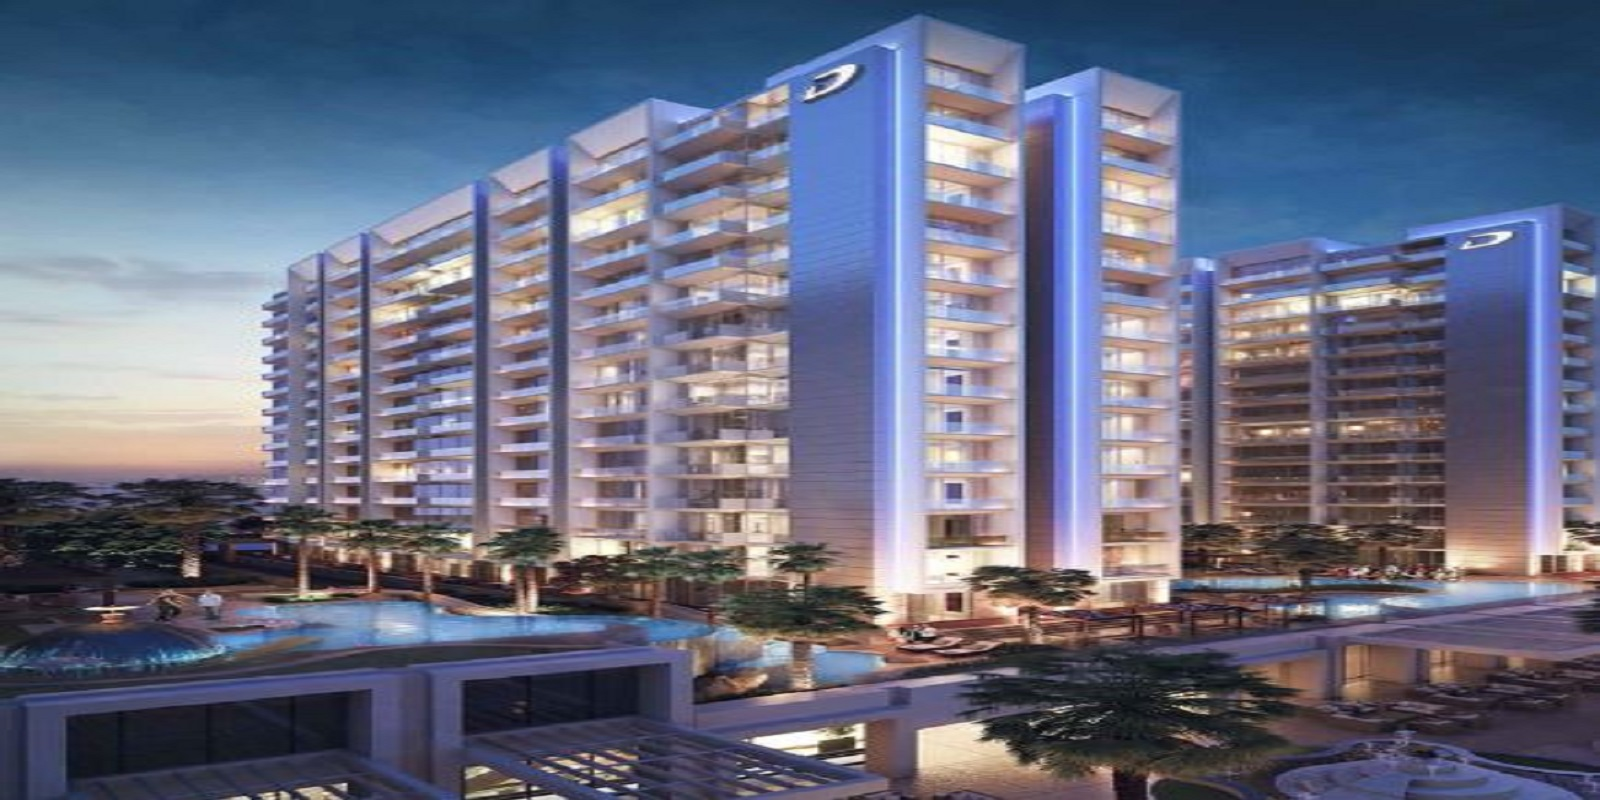 damac golfotel project large image2